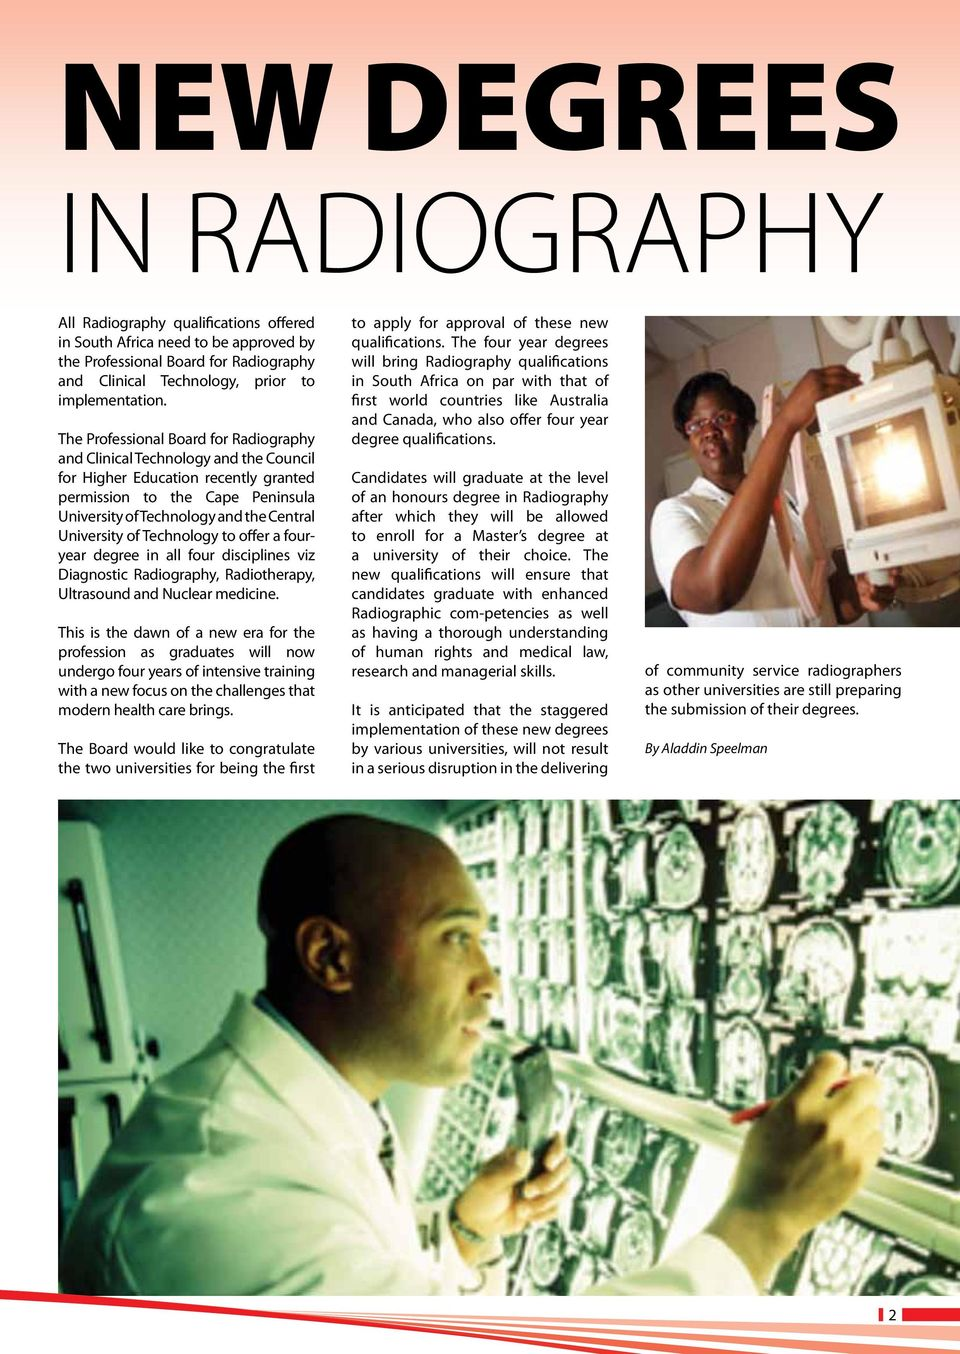 University of Technology to offer a fouryear degree in all four disciplines viz Diagnostic Radiography, Radiotherapy, Ultrasound and Nuclear medicine.